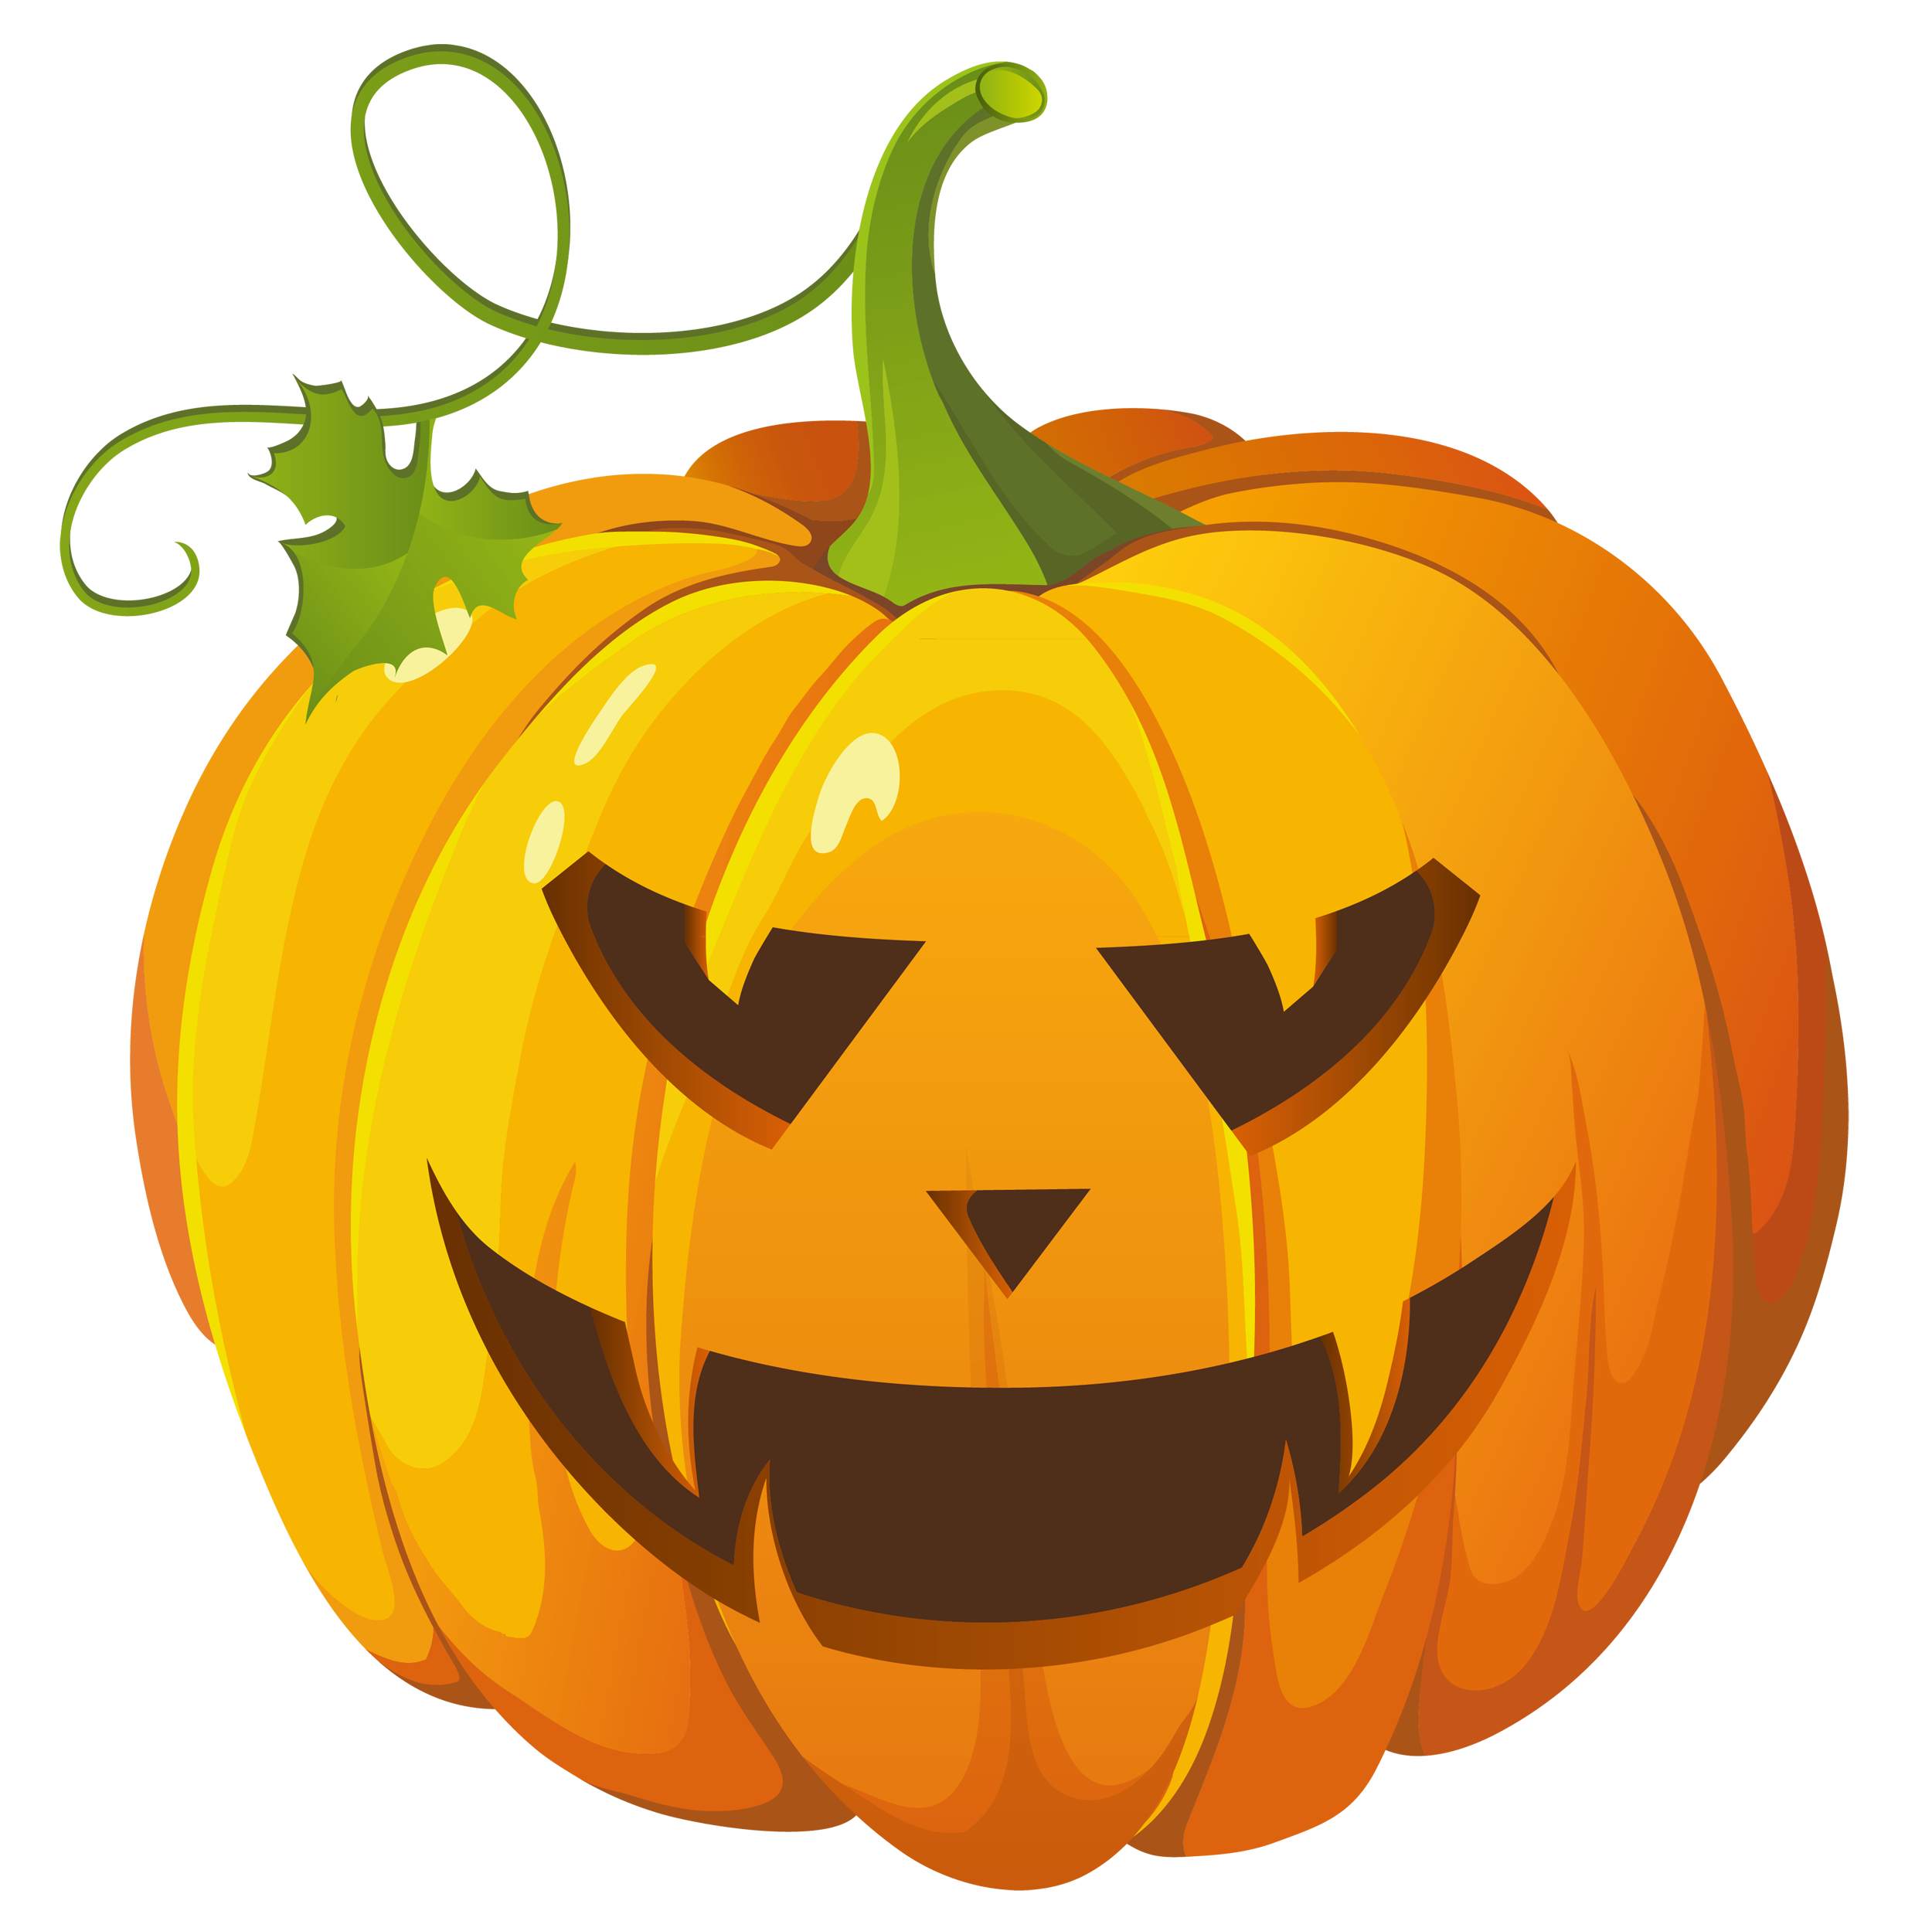 Halloween pumpkin clipart in green screen picture royalty free download Free Pumpkin Clipart at GetDrawings.com | Free for personal use Free ... picture royalty free download